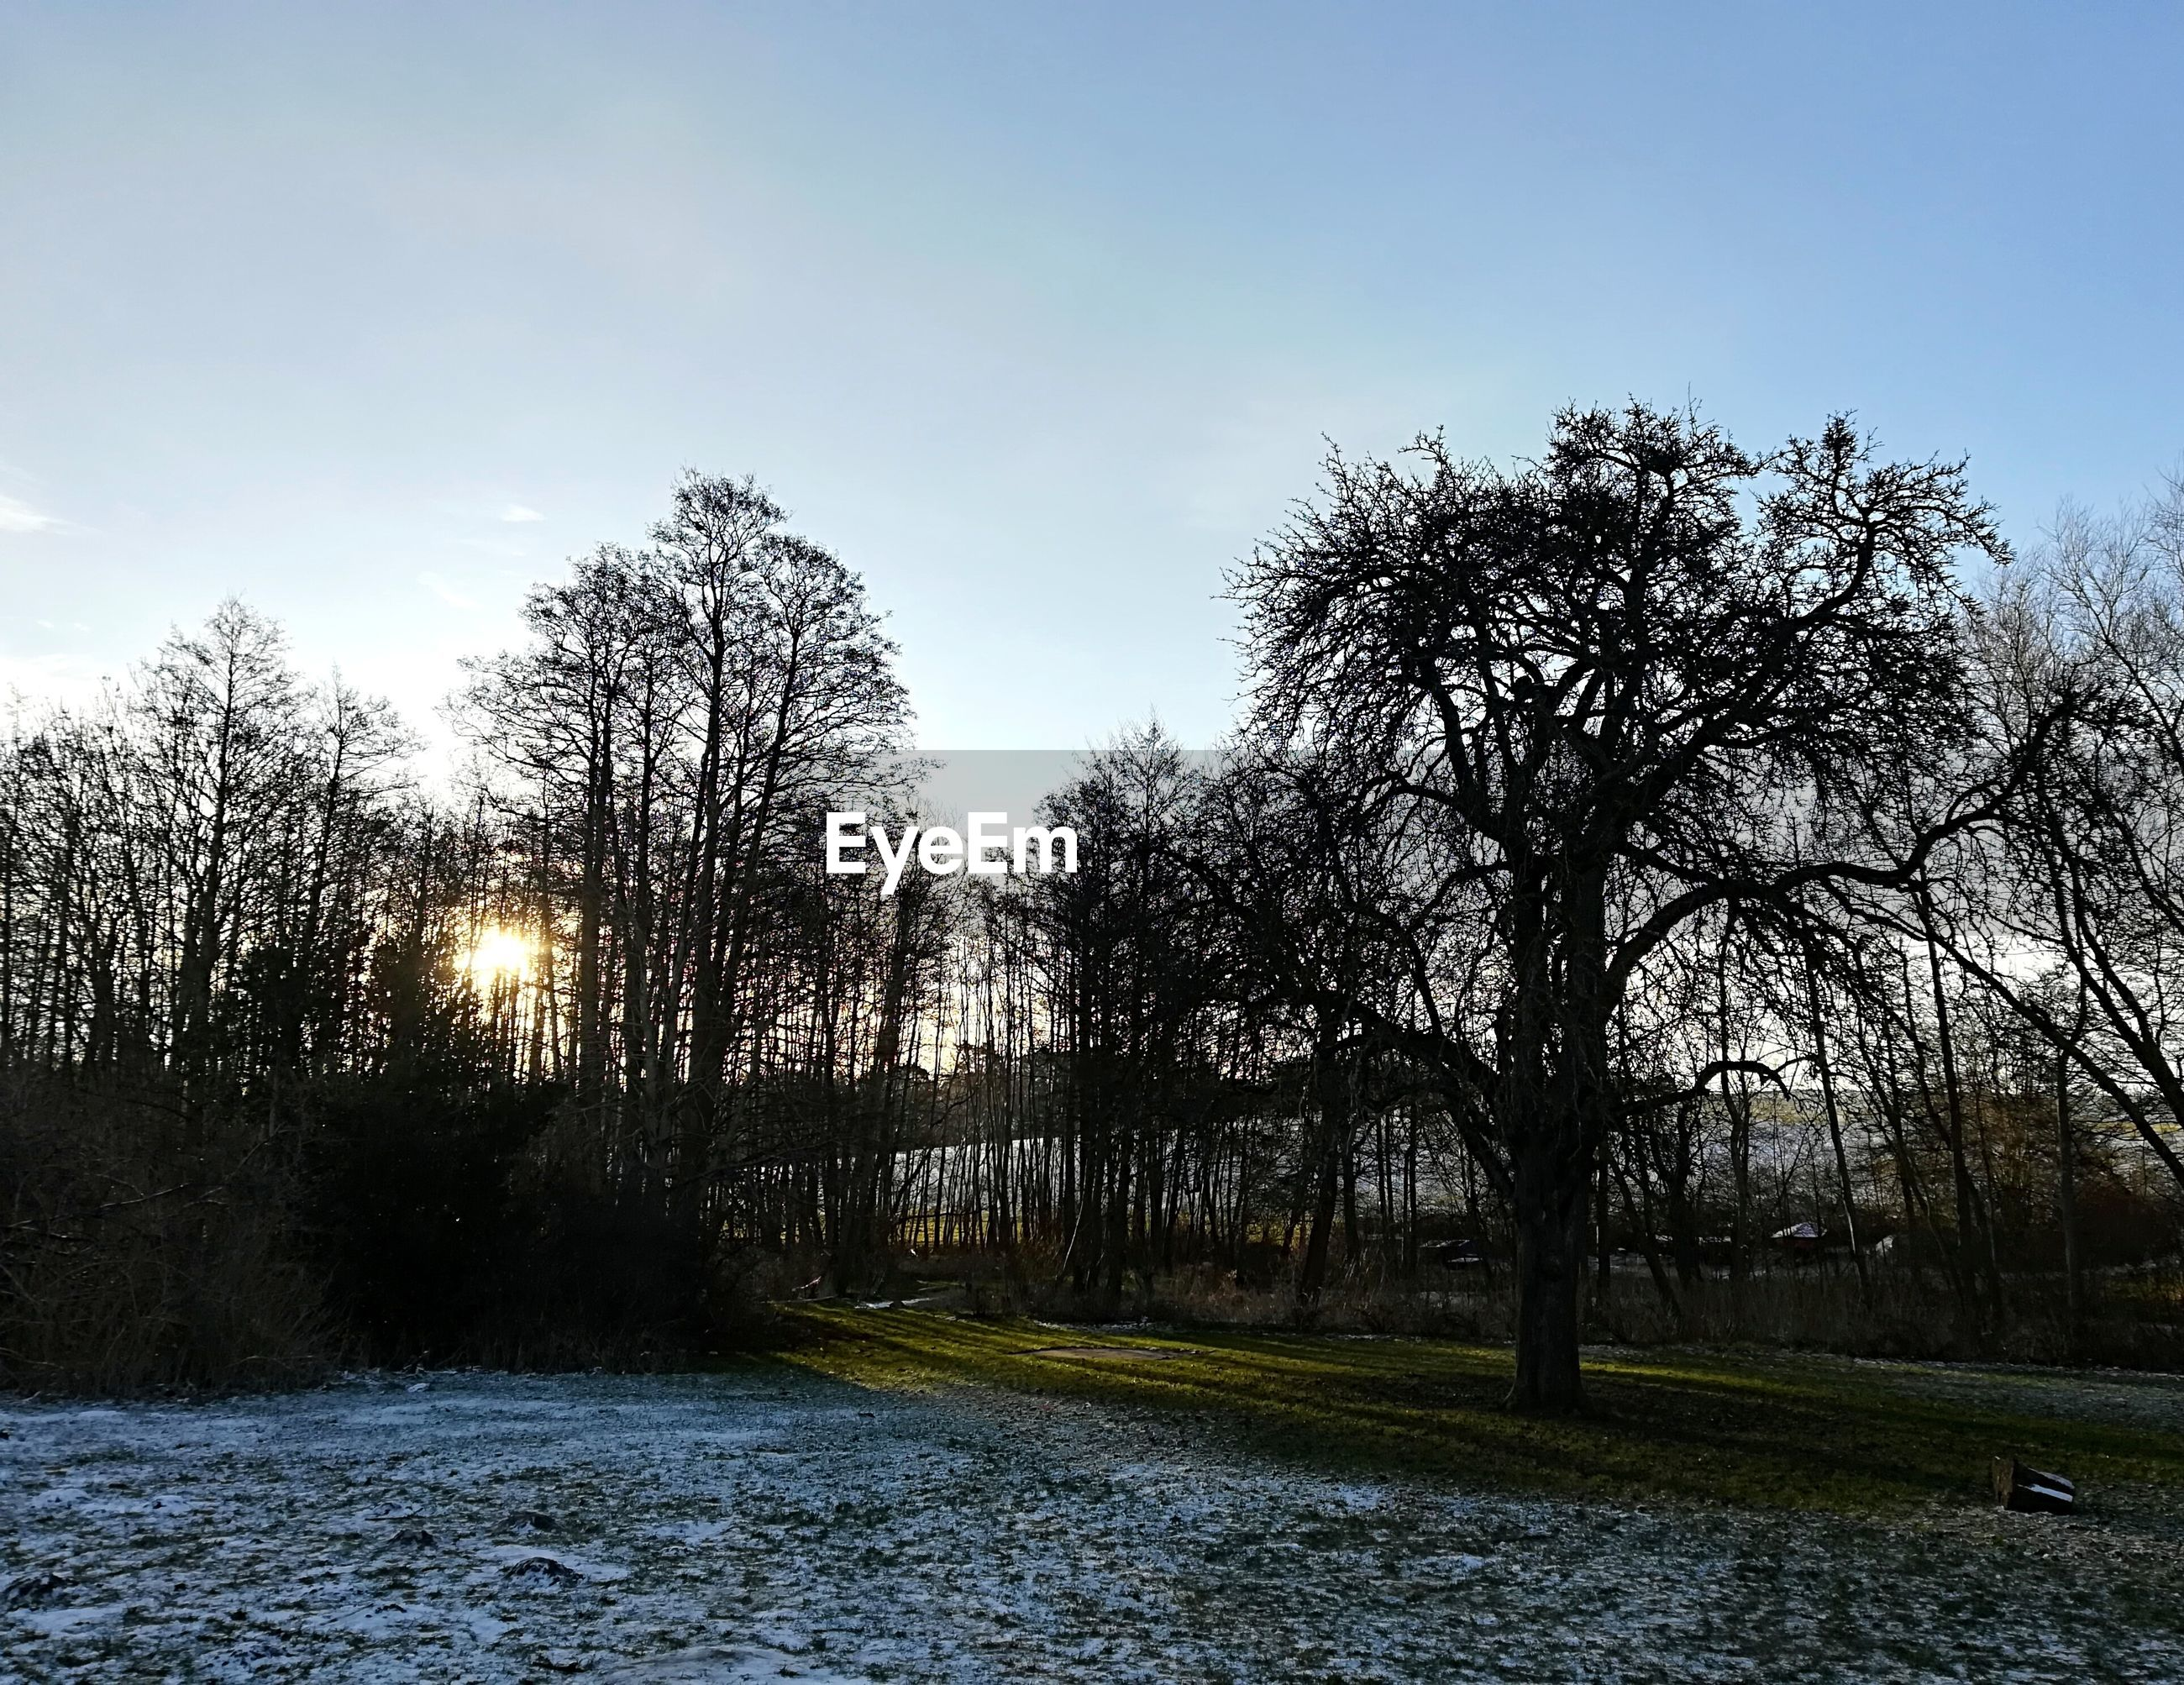 BARE TREES ON RIVERBANK AGAINST CLEAR SKY DURING WINTER